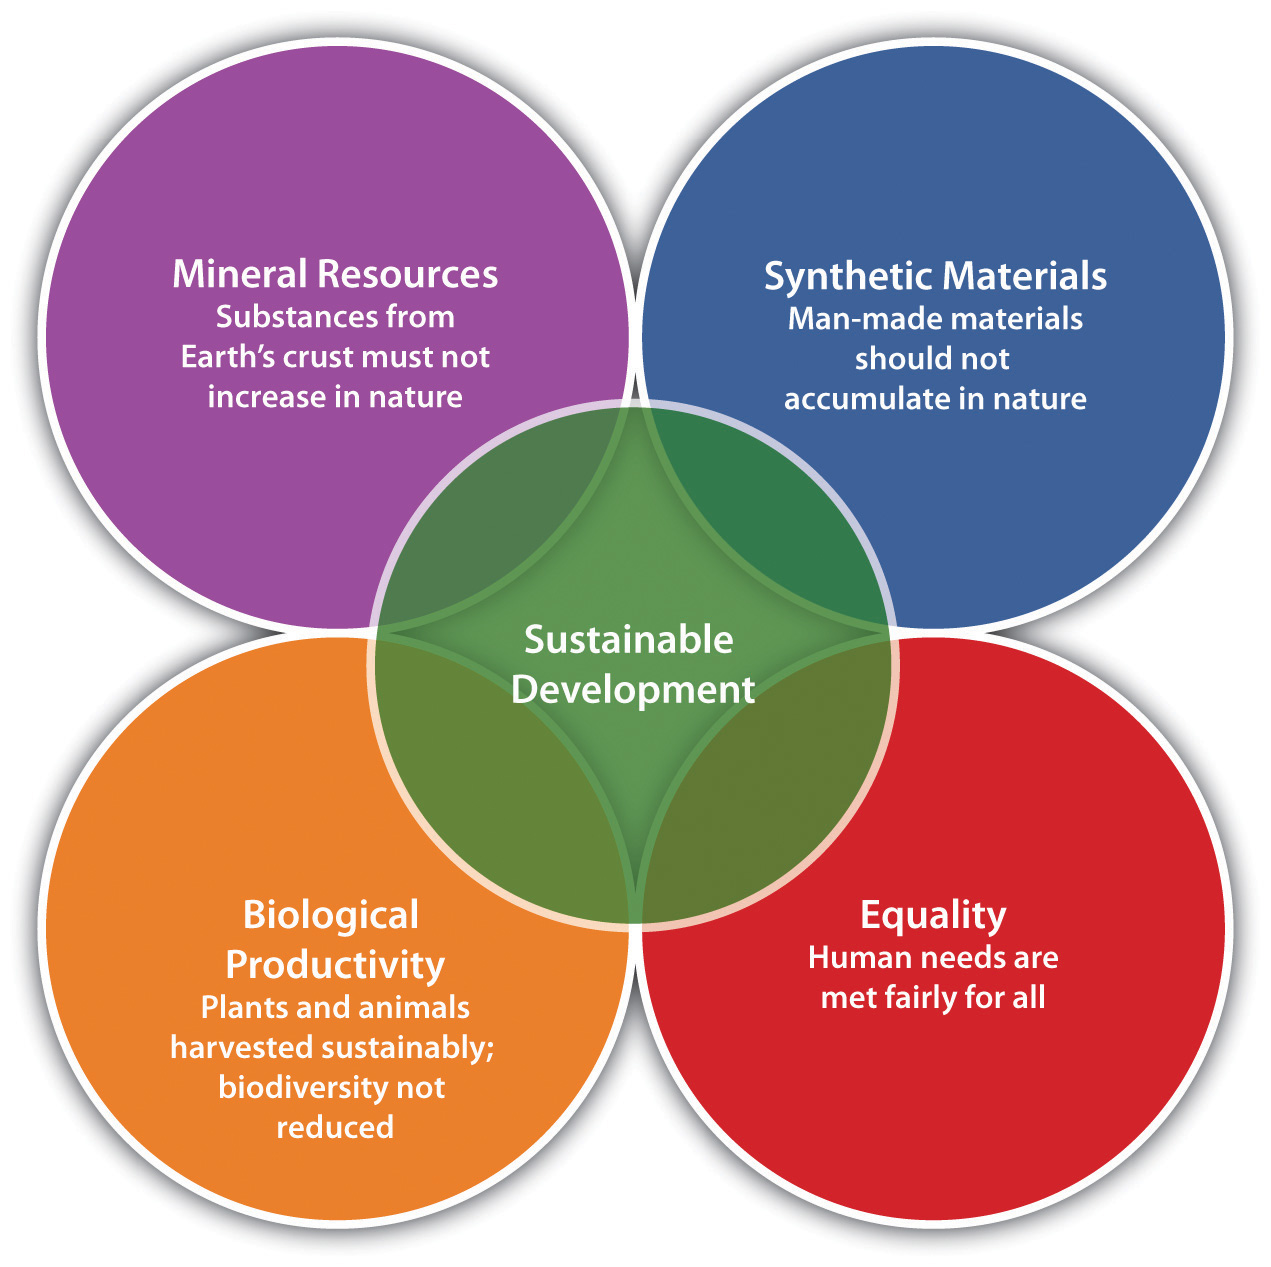 sustainability in entrepreneurship innovation and economic development Sustainopreneurship (entrepreneurship and innovation for sustainability) is a concept that has emerged from the earlier concepts social entrepreneurship and ecopreneurship, via sustainability entrepreneurship.